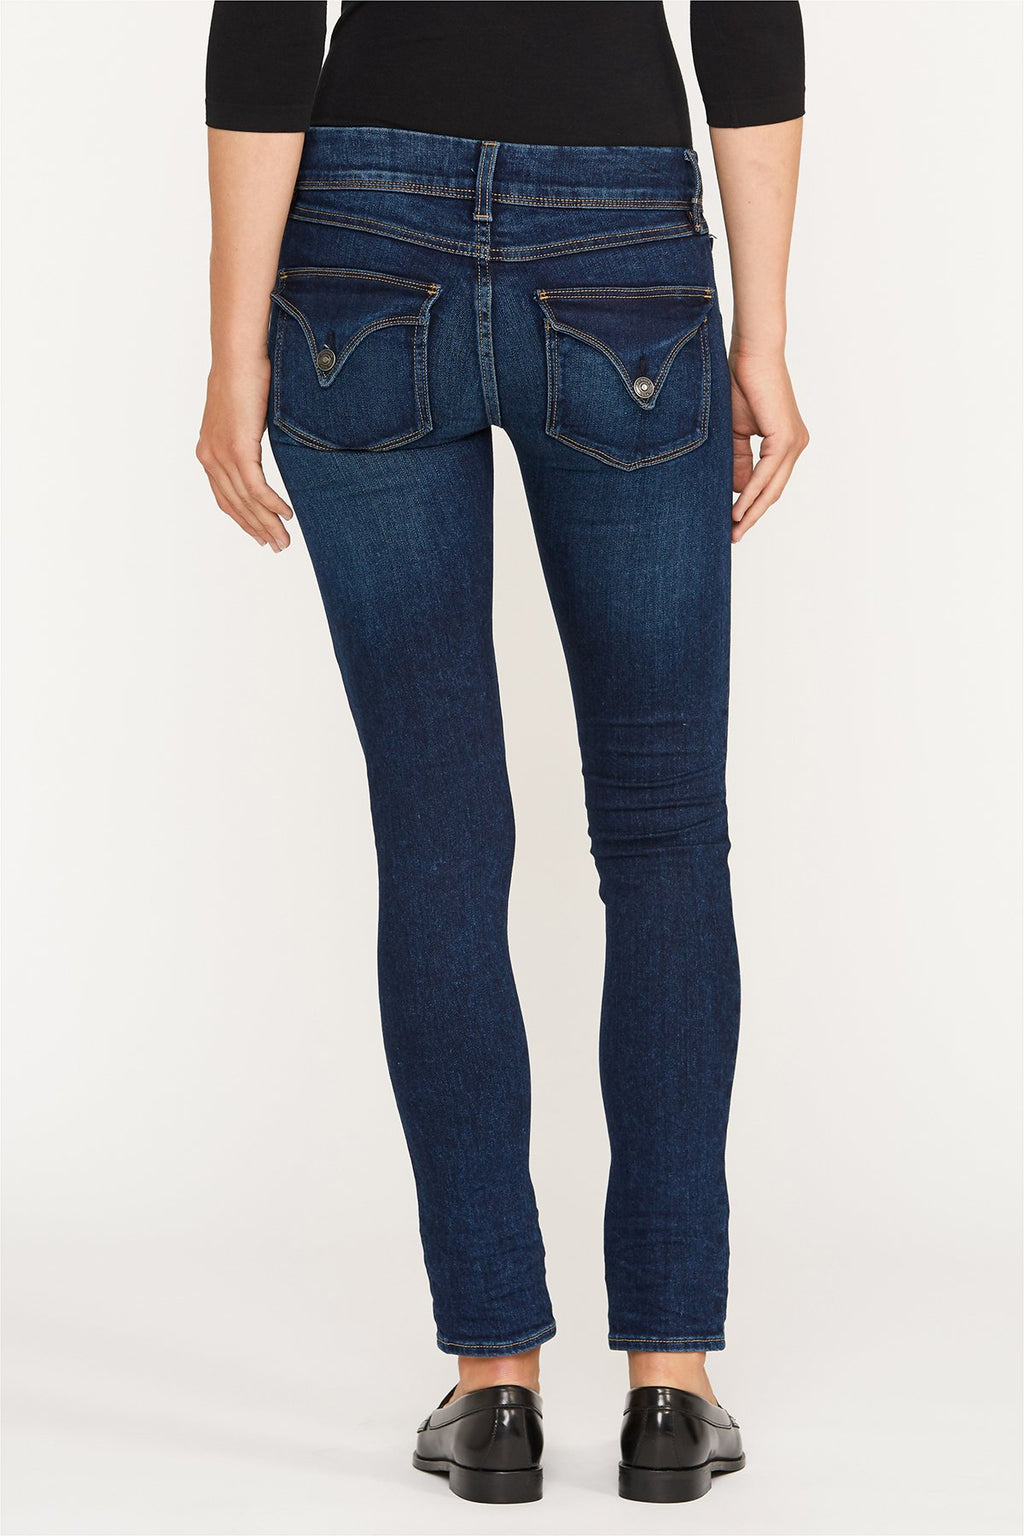 Hudson Collin Mid-Rise Skinny Jean - Obscurity